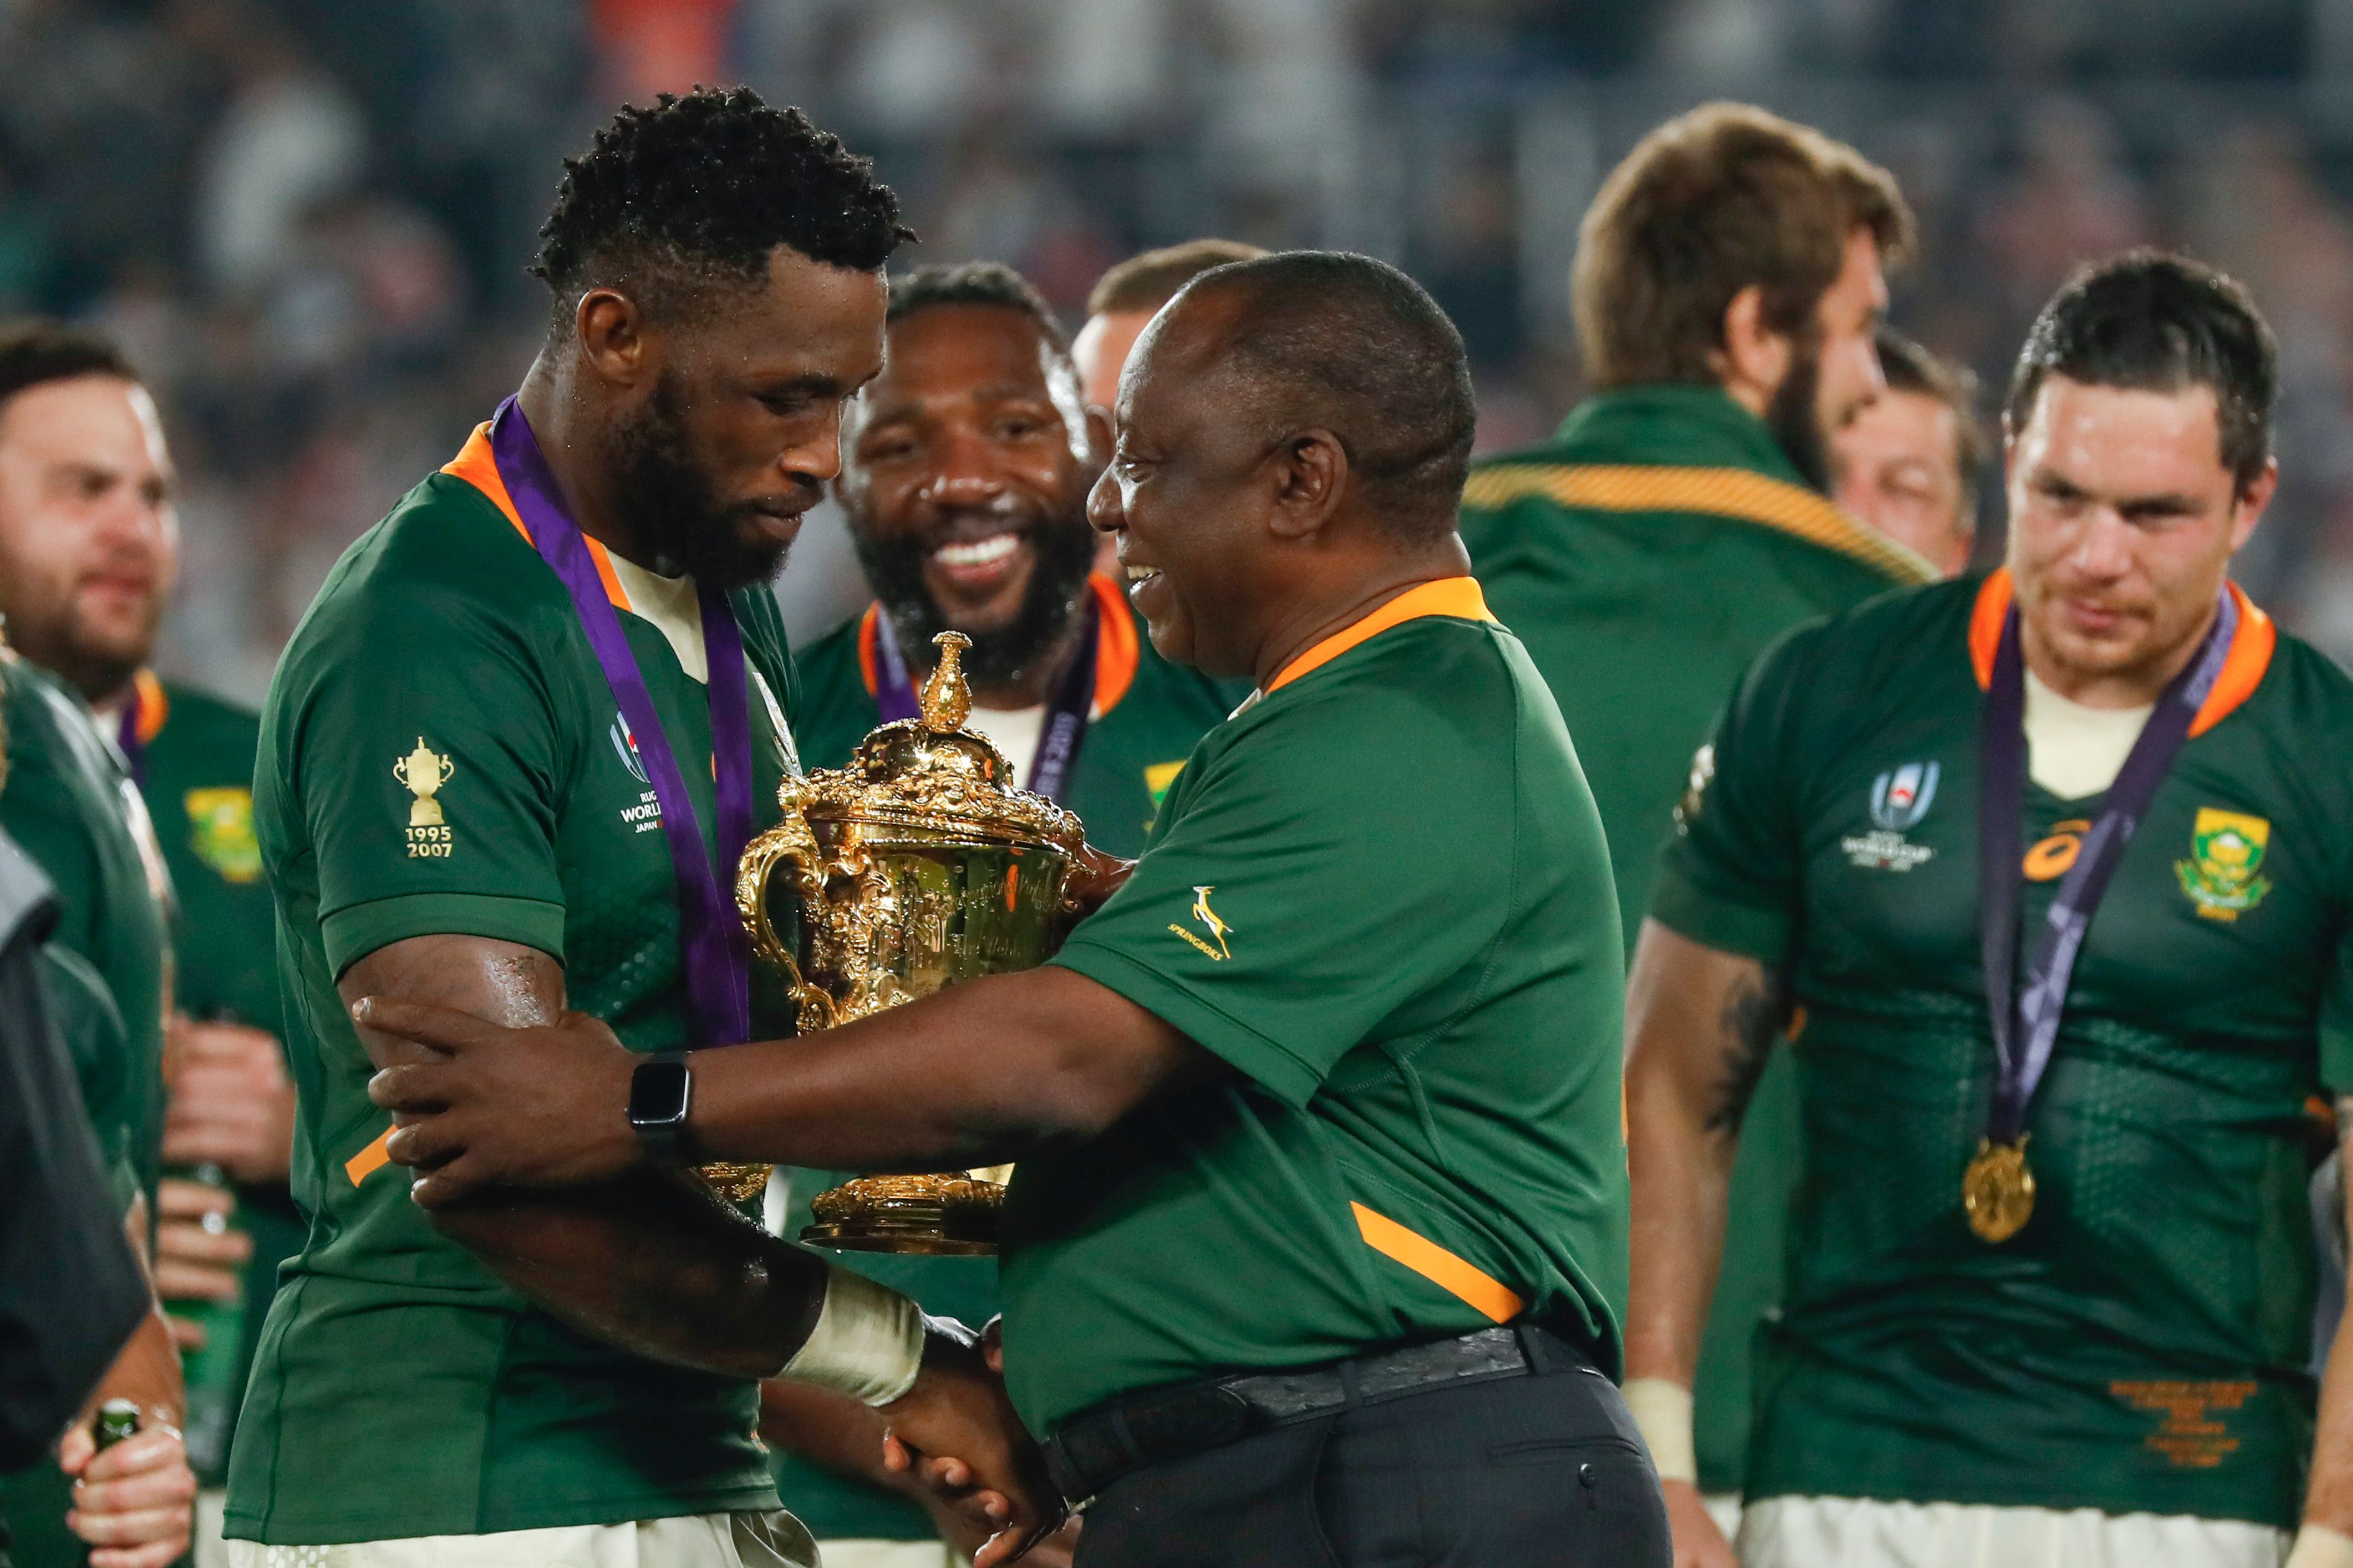 South Africa's President Cyril Ramaphosa (C) congratulates South Africa's flanker Siya Kolisi (L) as they celebrate winning the 2019 Rugby World Cup final.